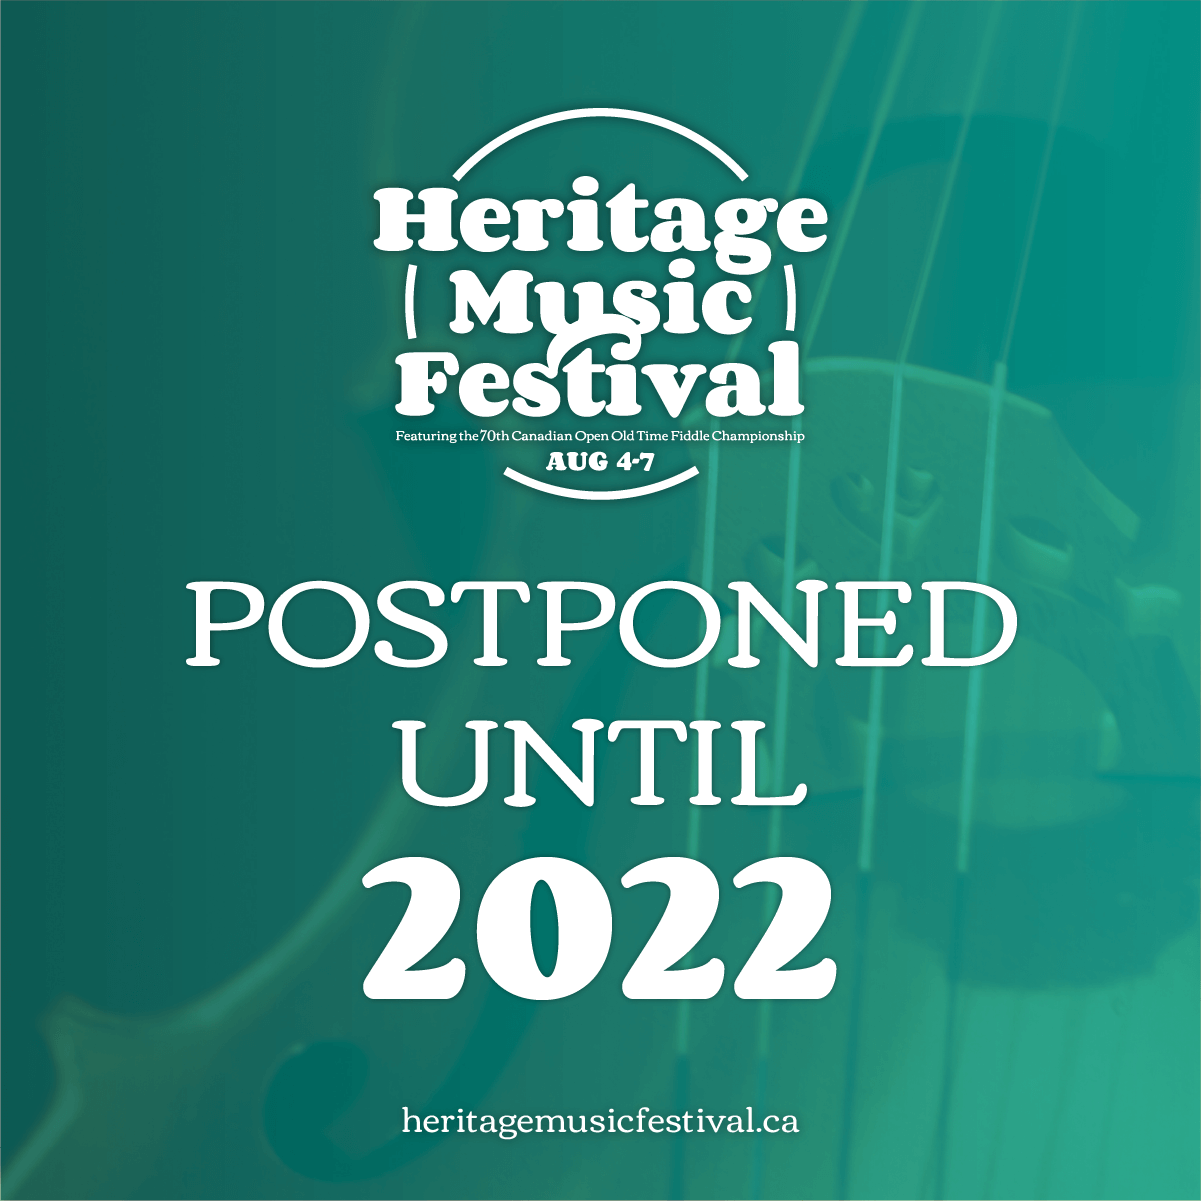 You are currently viewing the Heritage Music Festival and 70th Canadian Open Old Time Fiddle Championship – Postponed to 2022